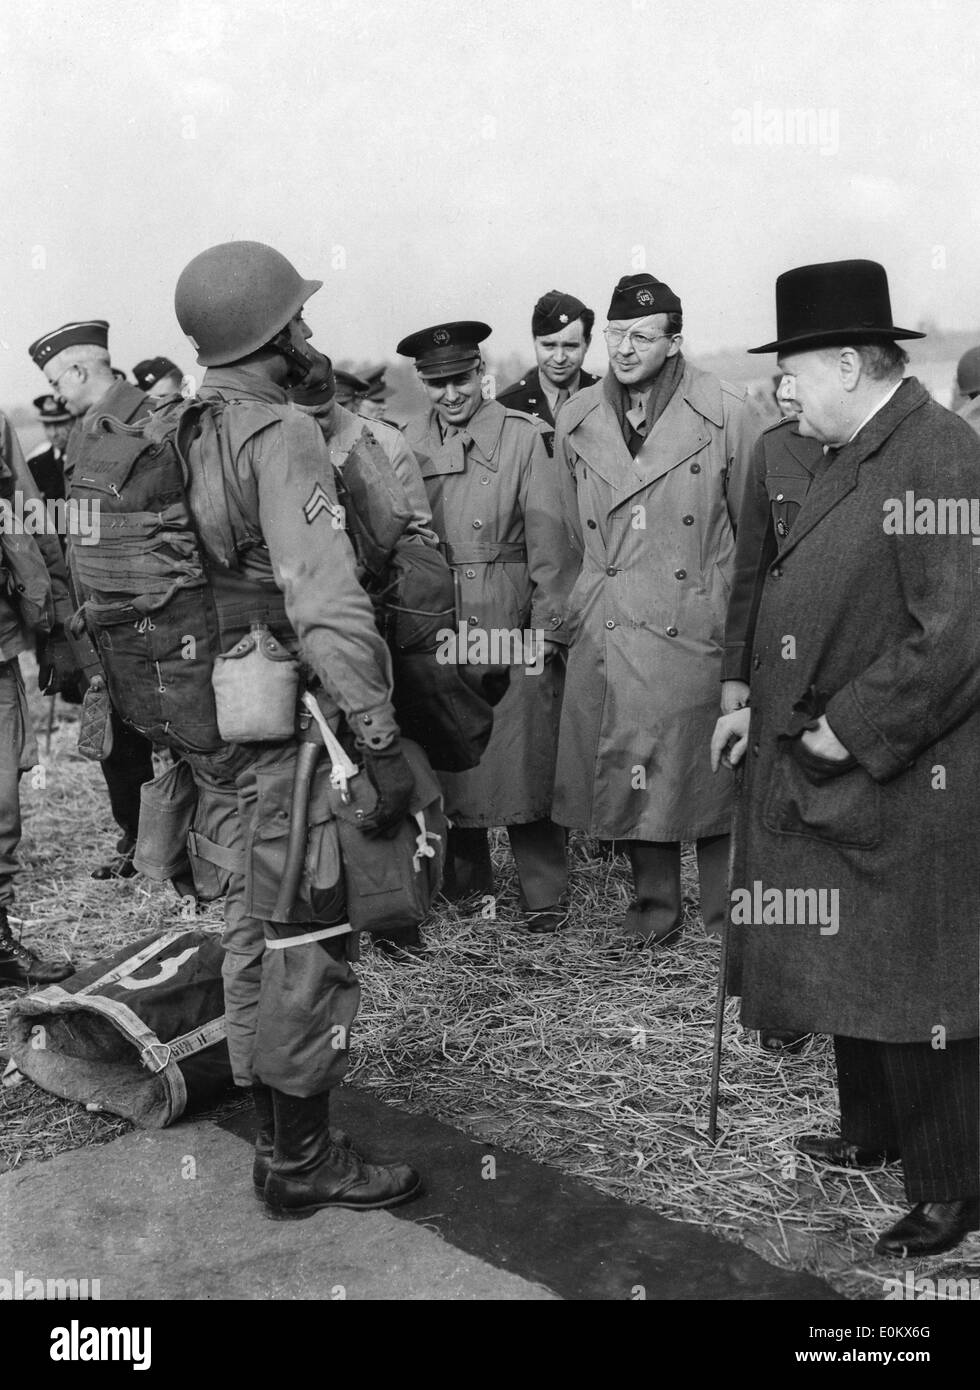 Sir Winston Churchill inspects U.S. Army paratrooper - Stock Image